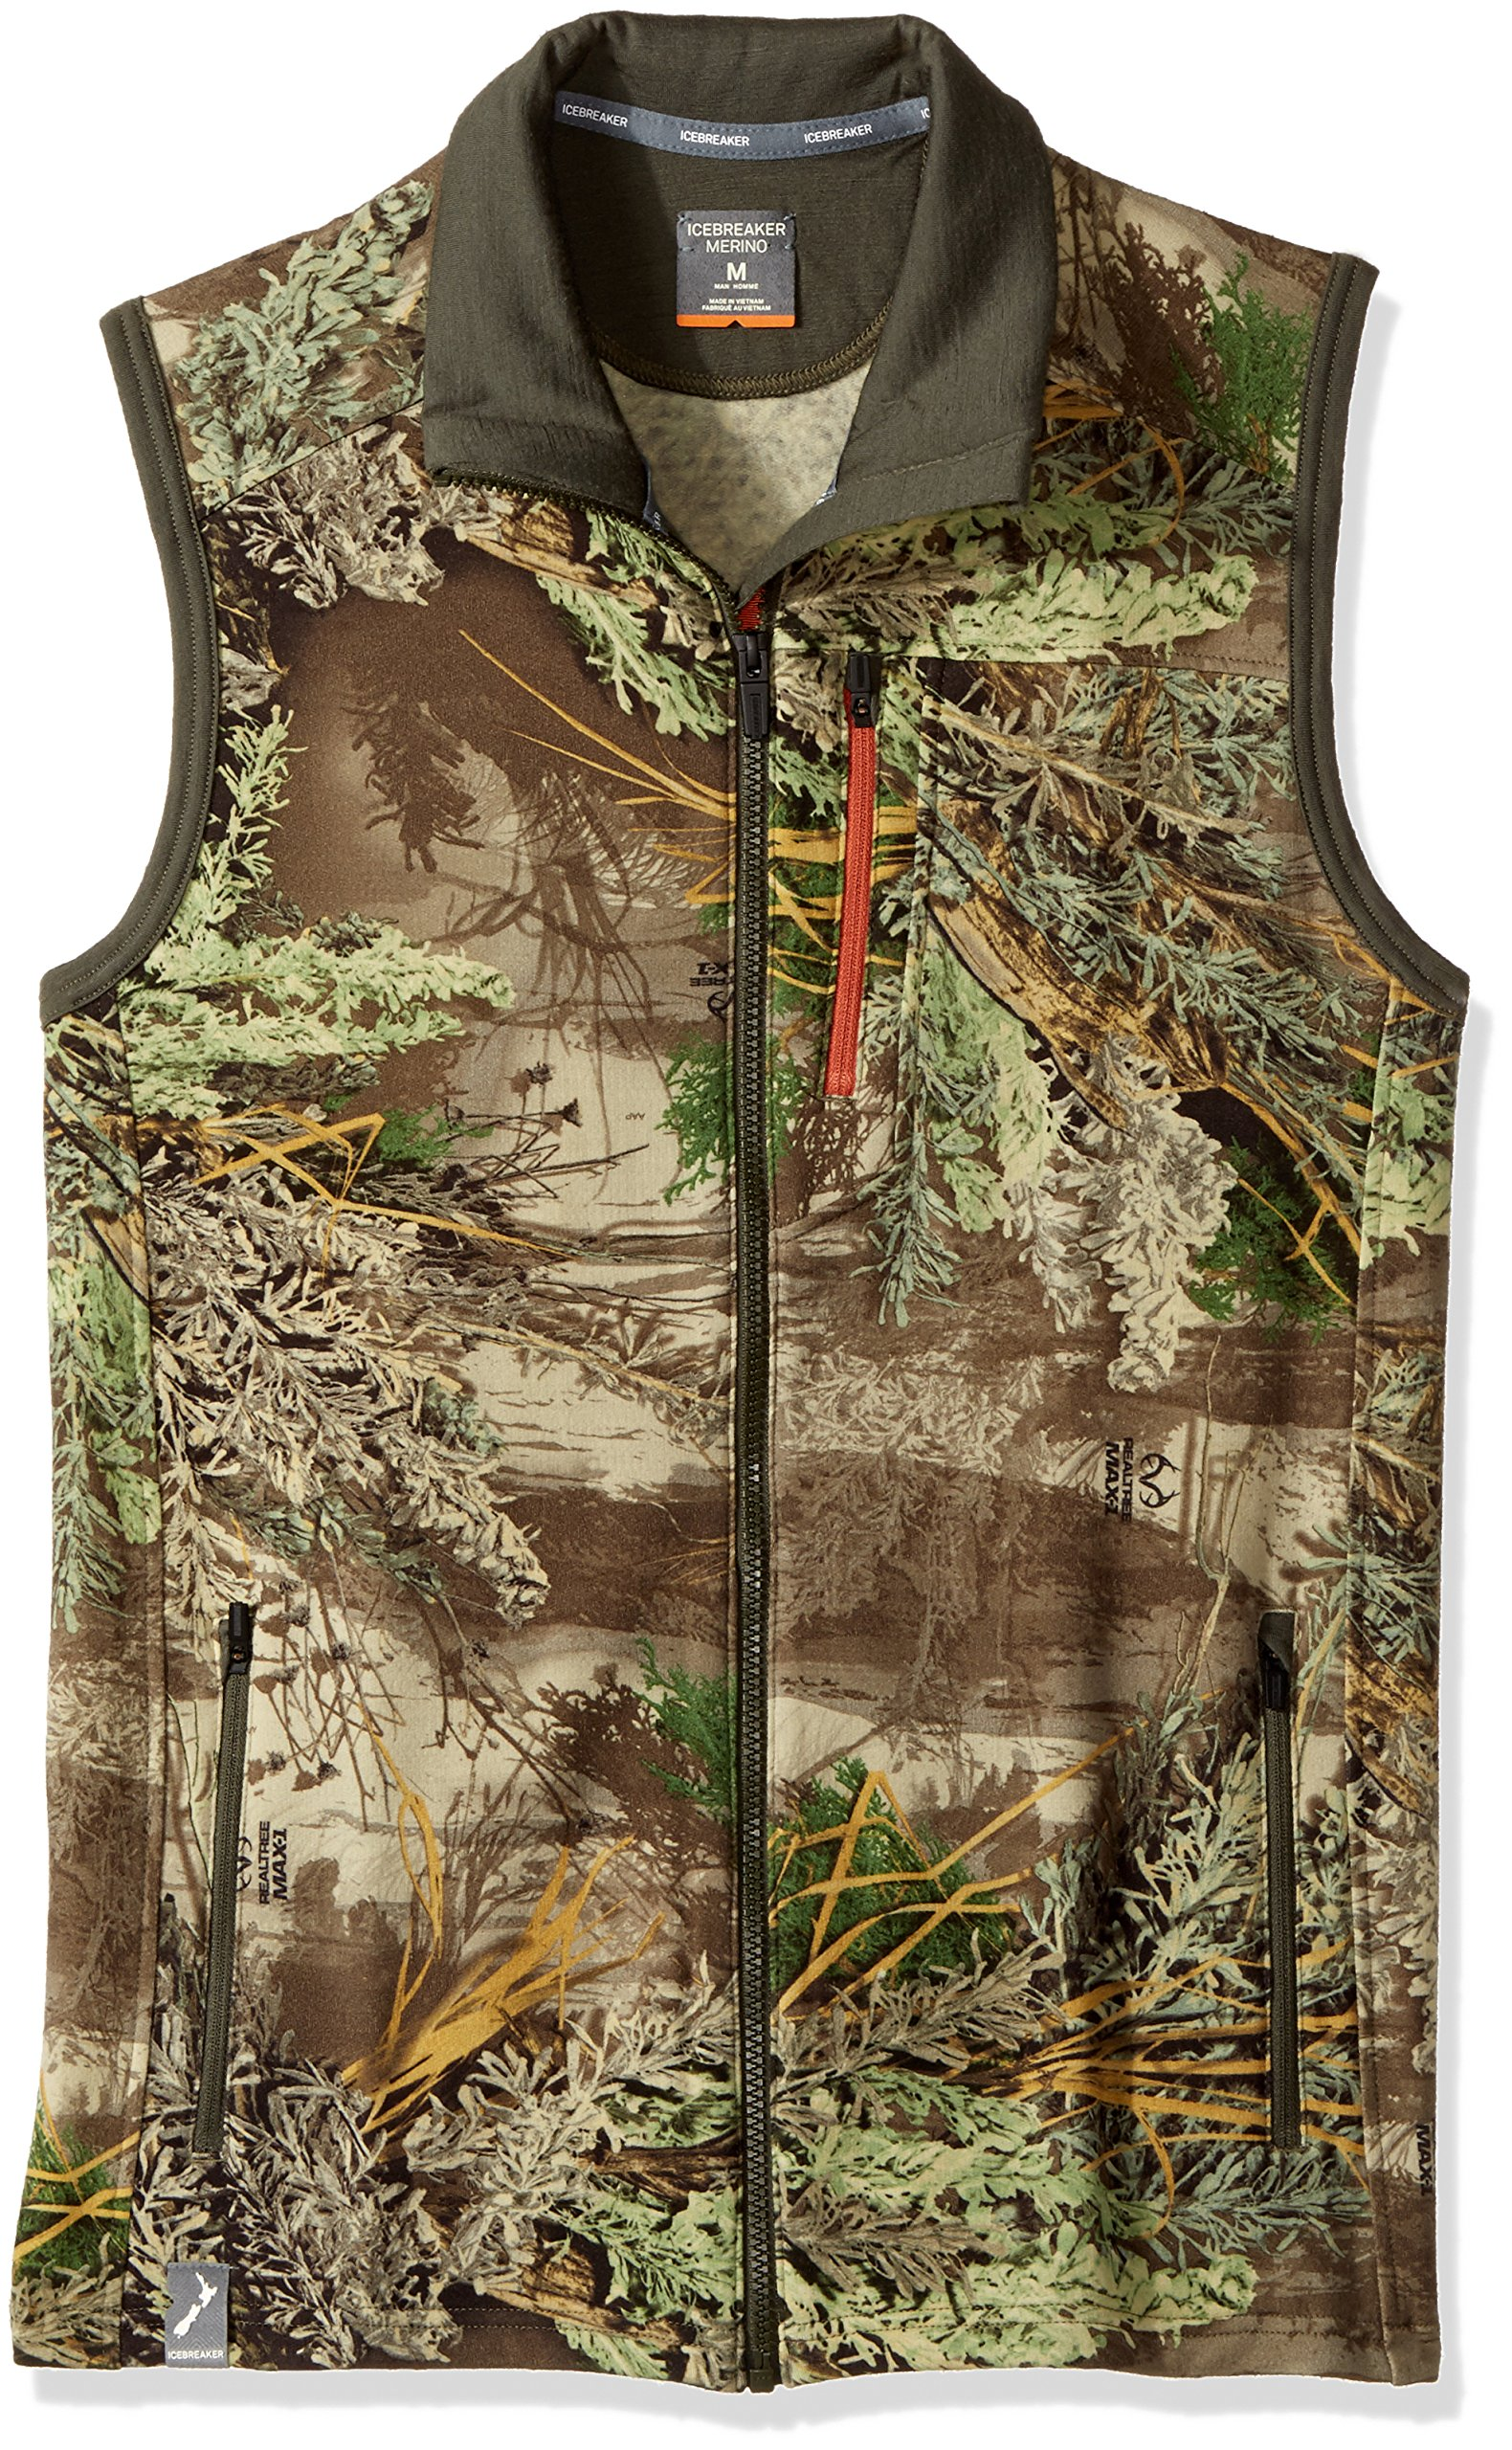 Icebreaker Men's Sierra Vest, Real Tree Max/Cargo/Copper, Medium by Icebreaker Merino